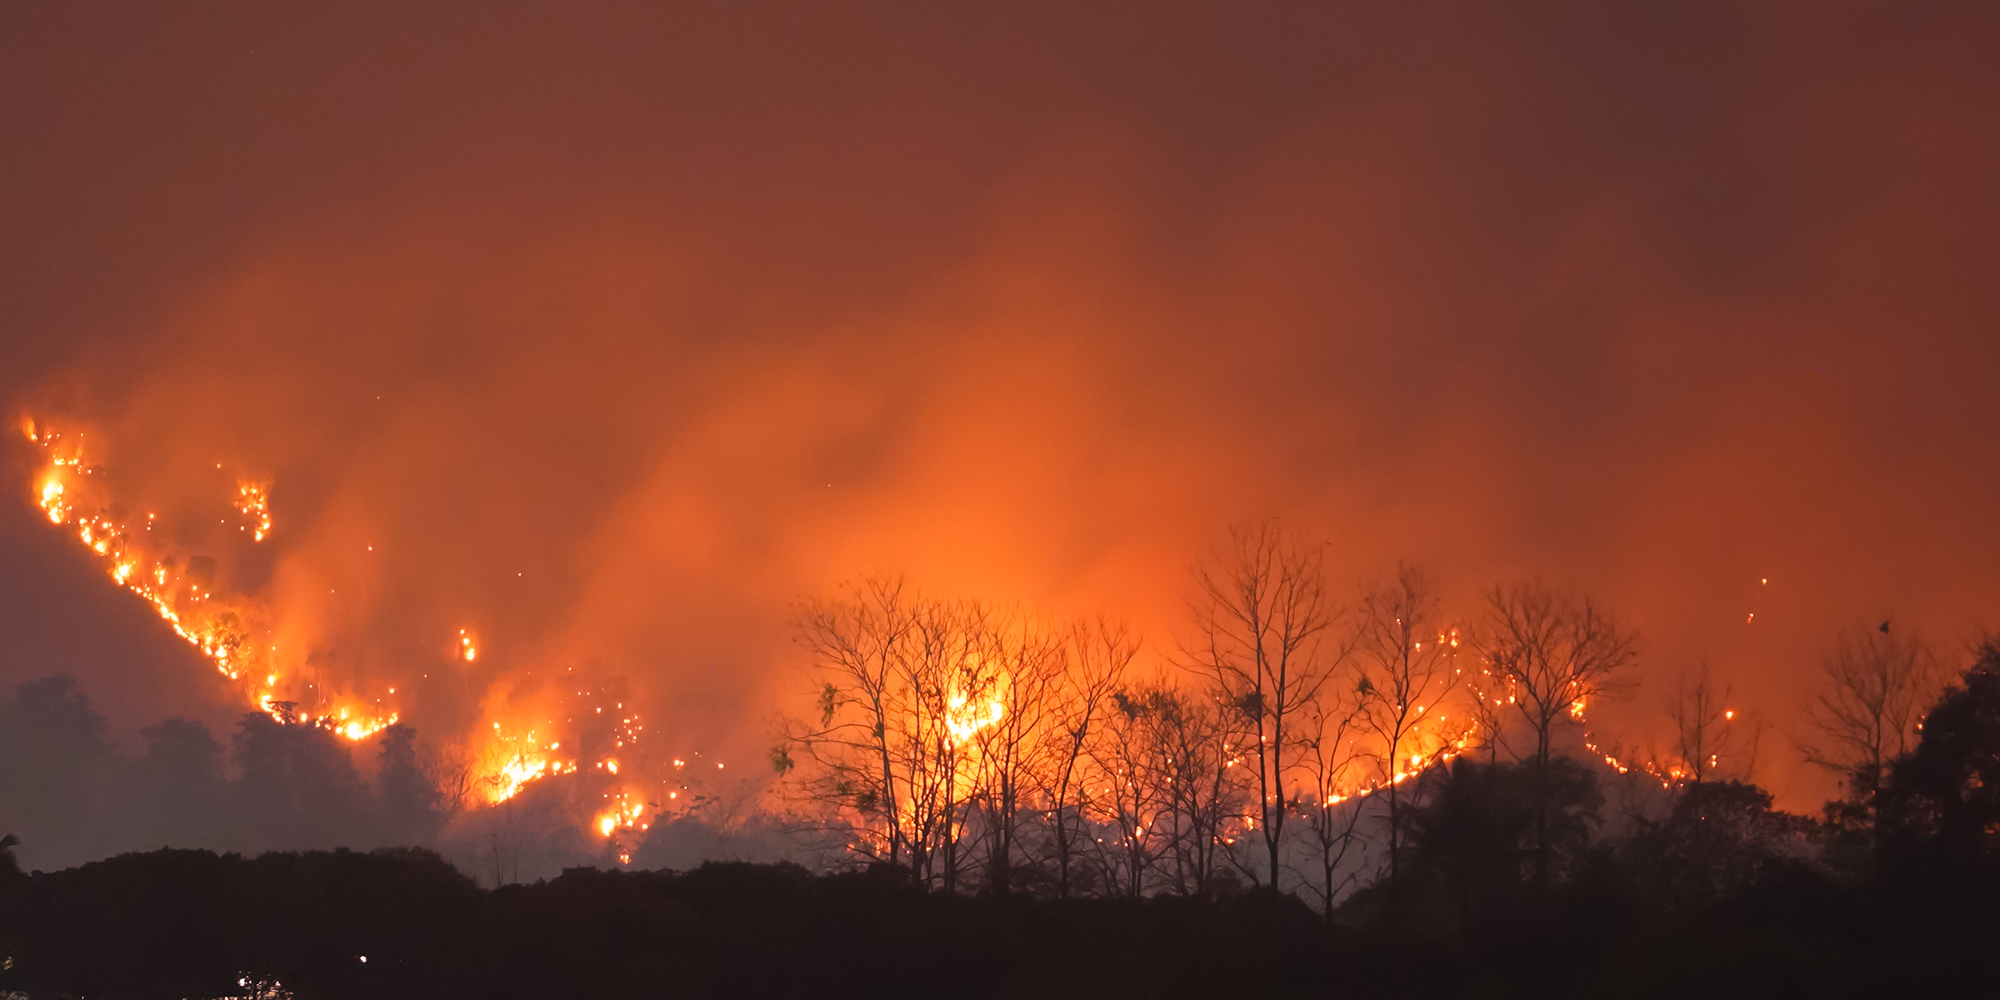 Forest Fire at Night.Wildfire burning forest trees in the mountain.Wildfire caused by humans.